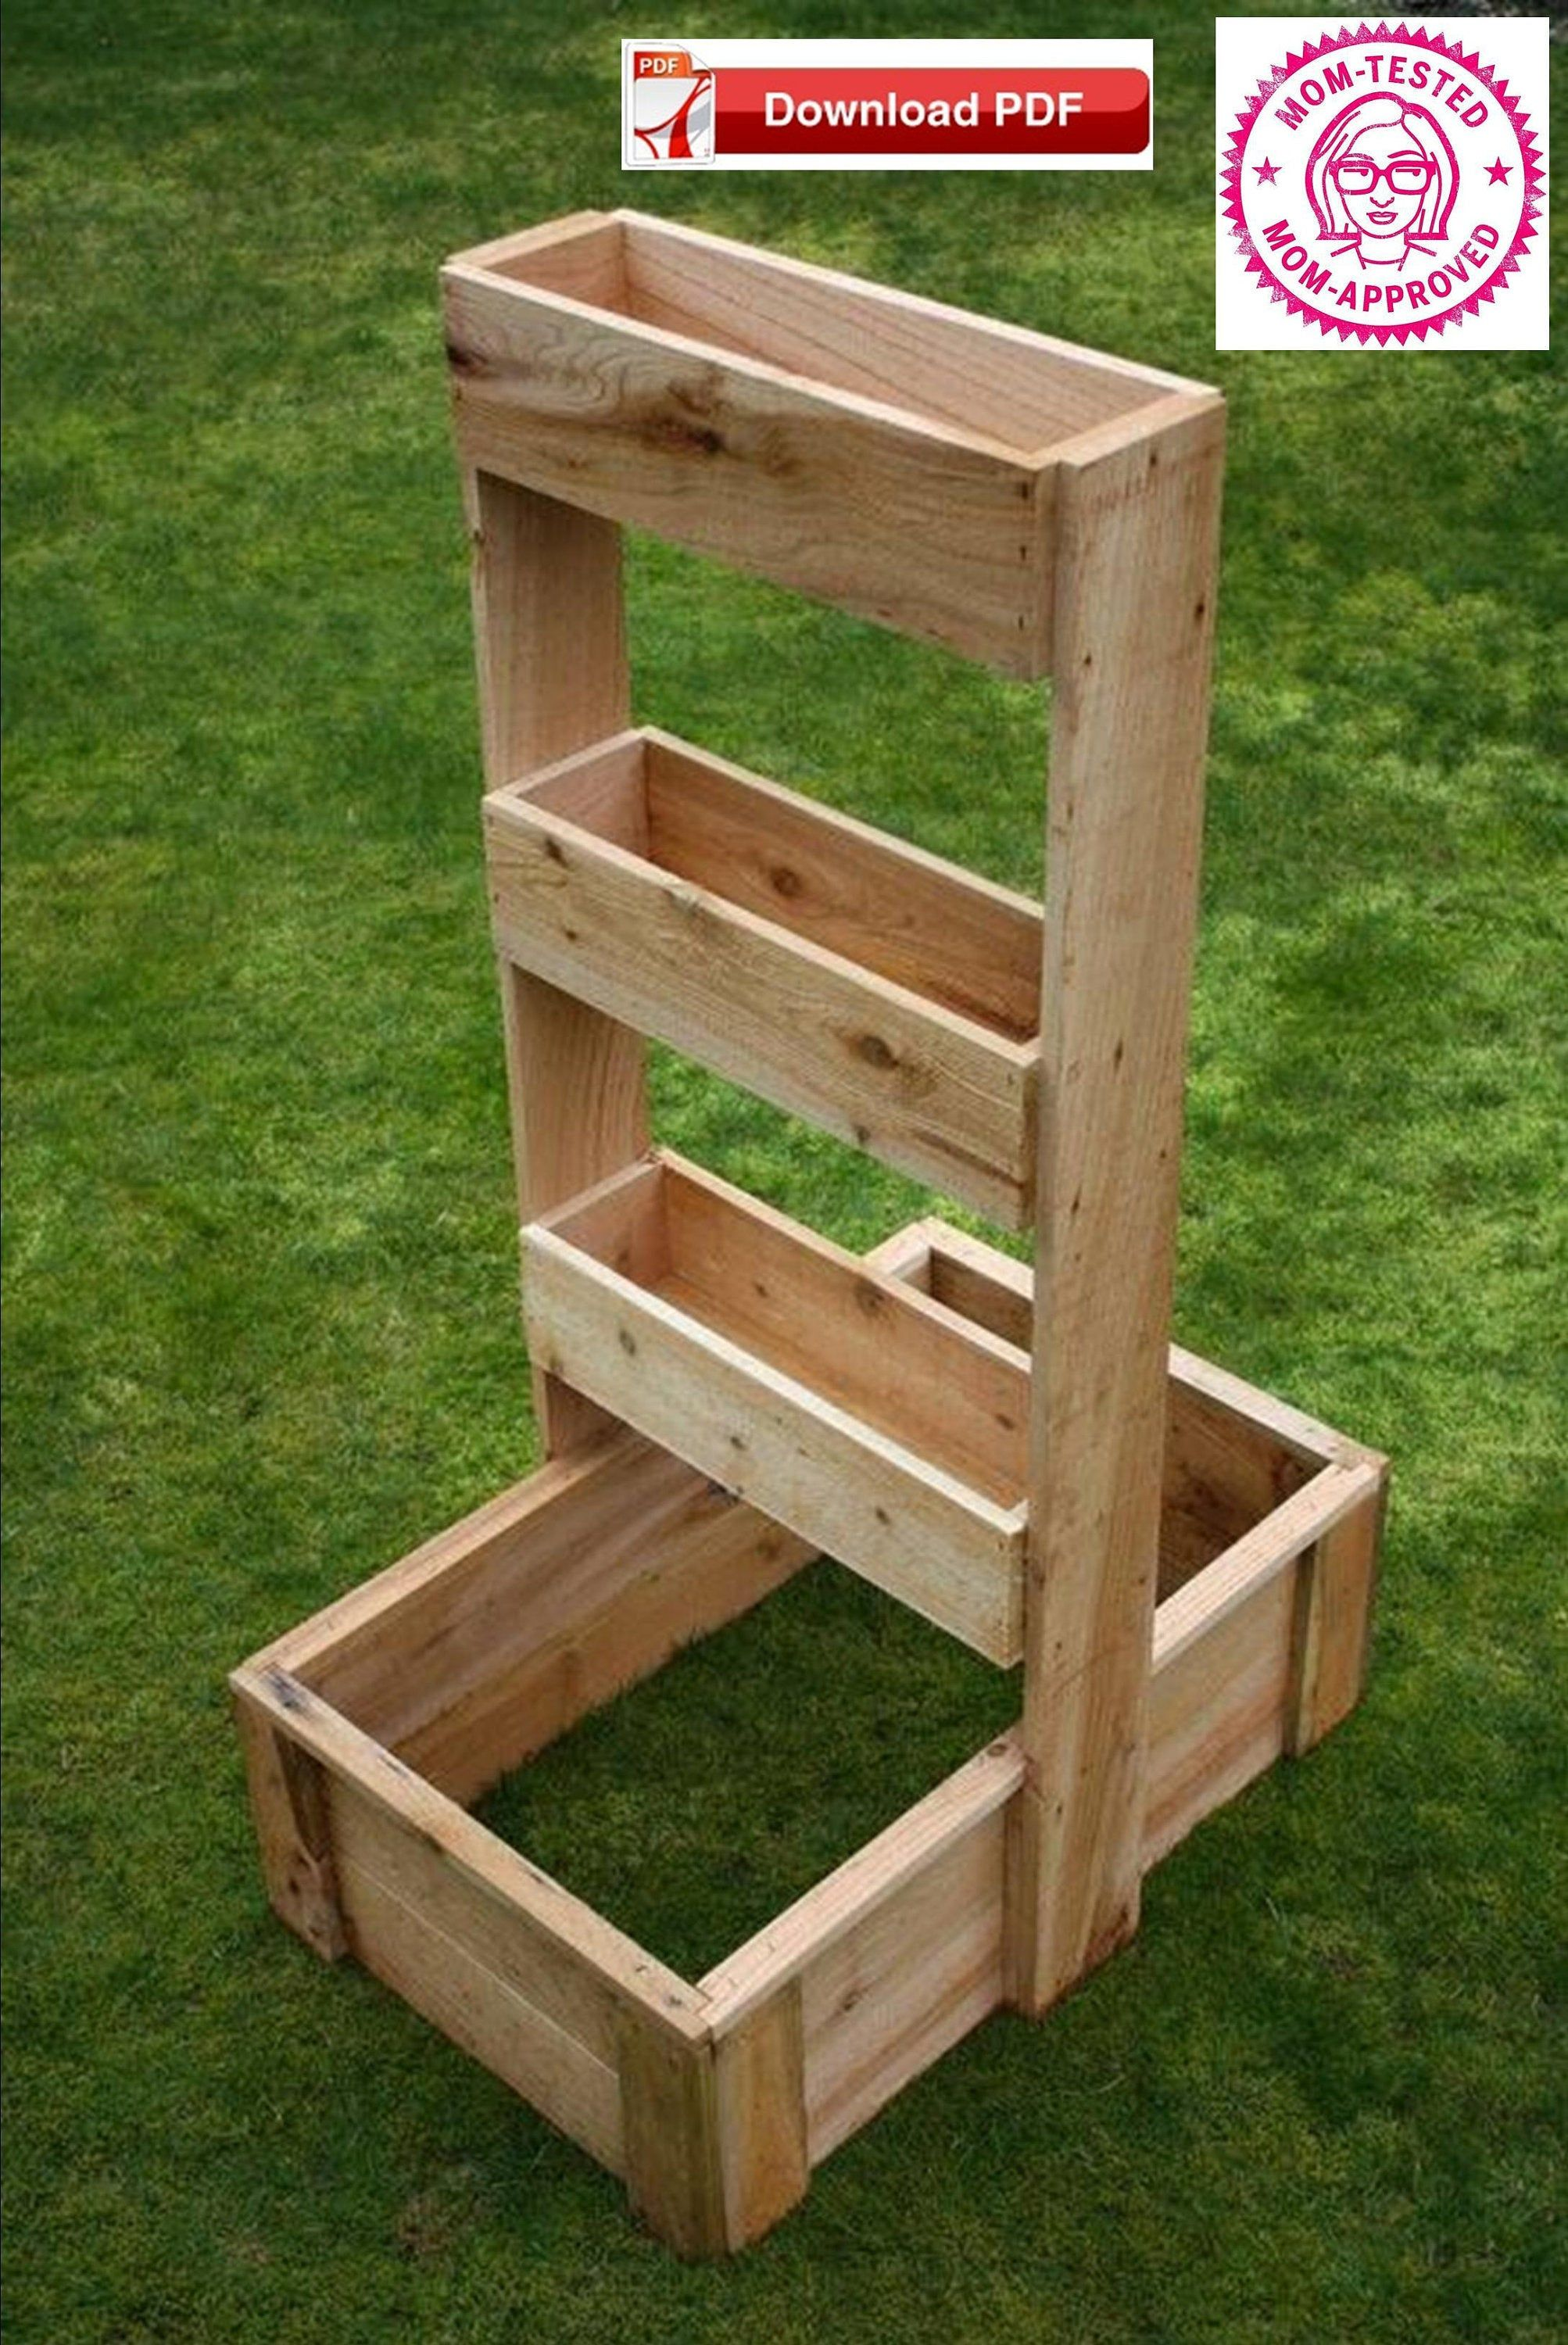 Herb Planter Plan Wood Herb Planter Plan Garden Herb Planter Plan